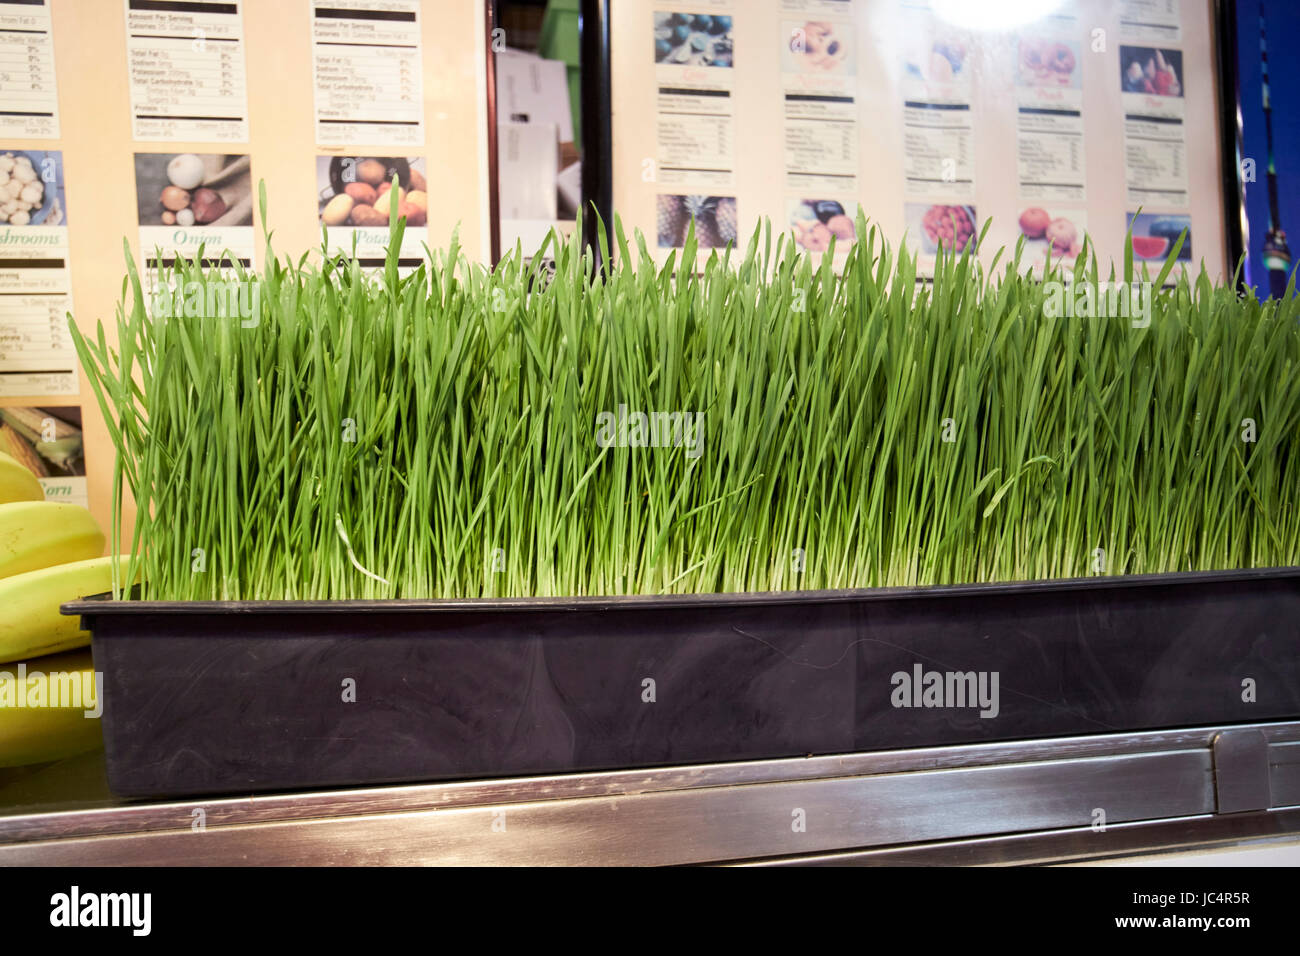 fresh wheatgrass for sale - Stock Image